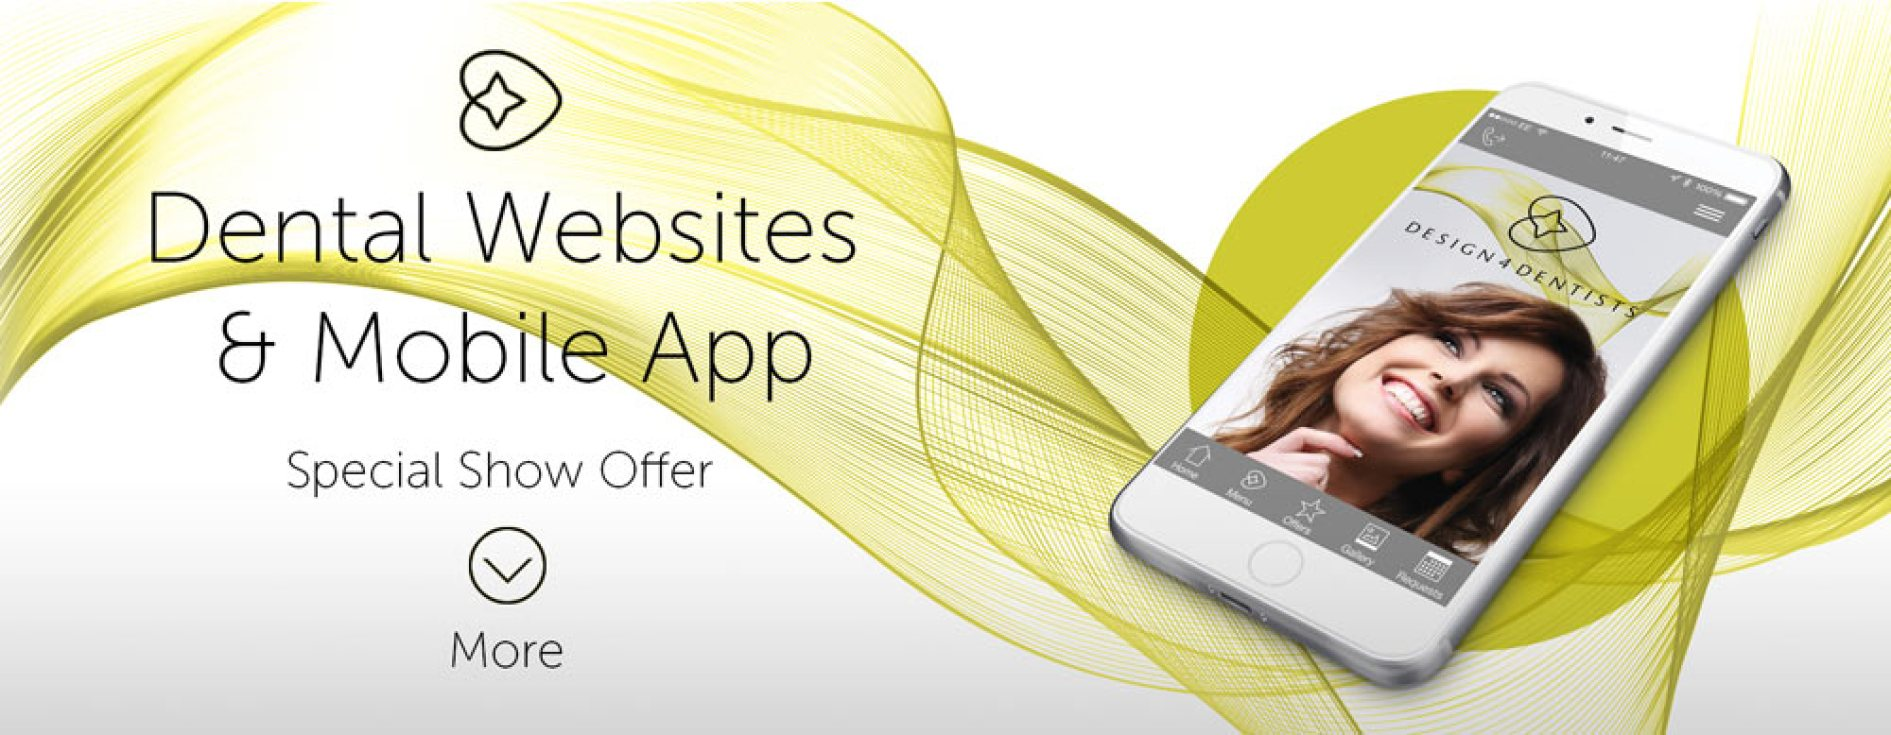 Dental-Mobile-App-Offer